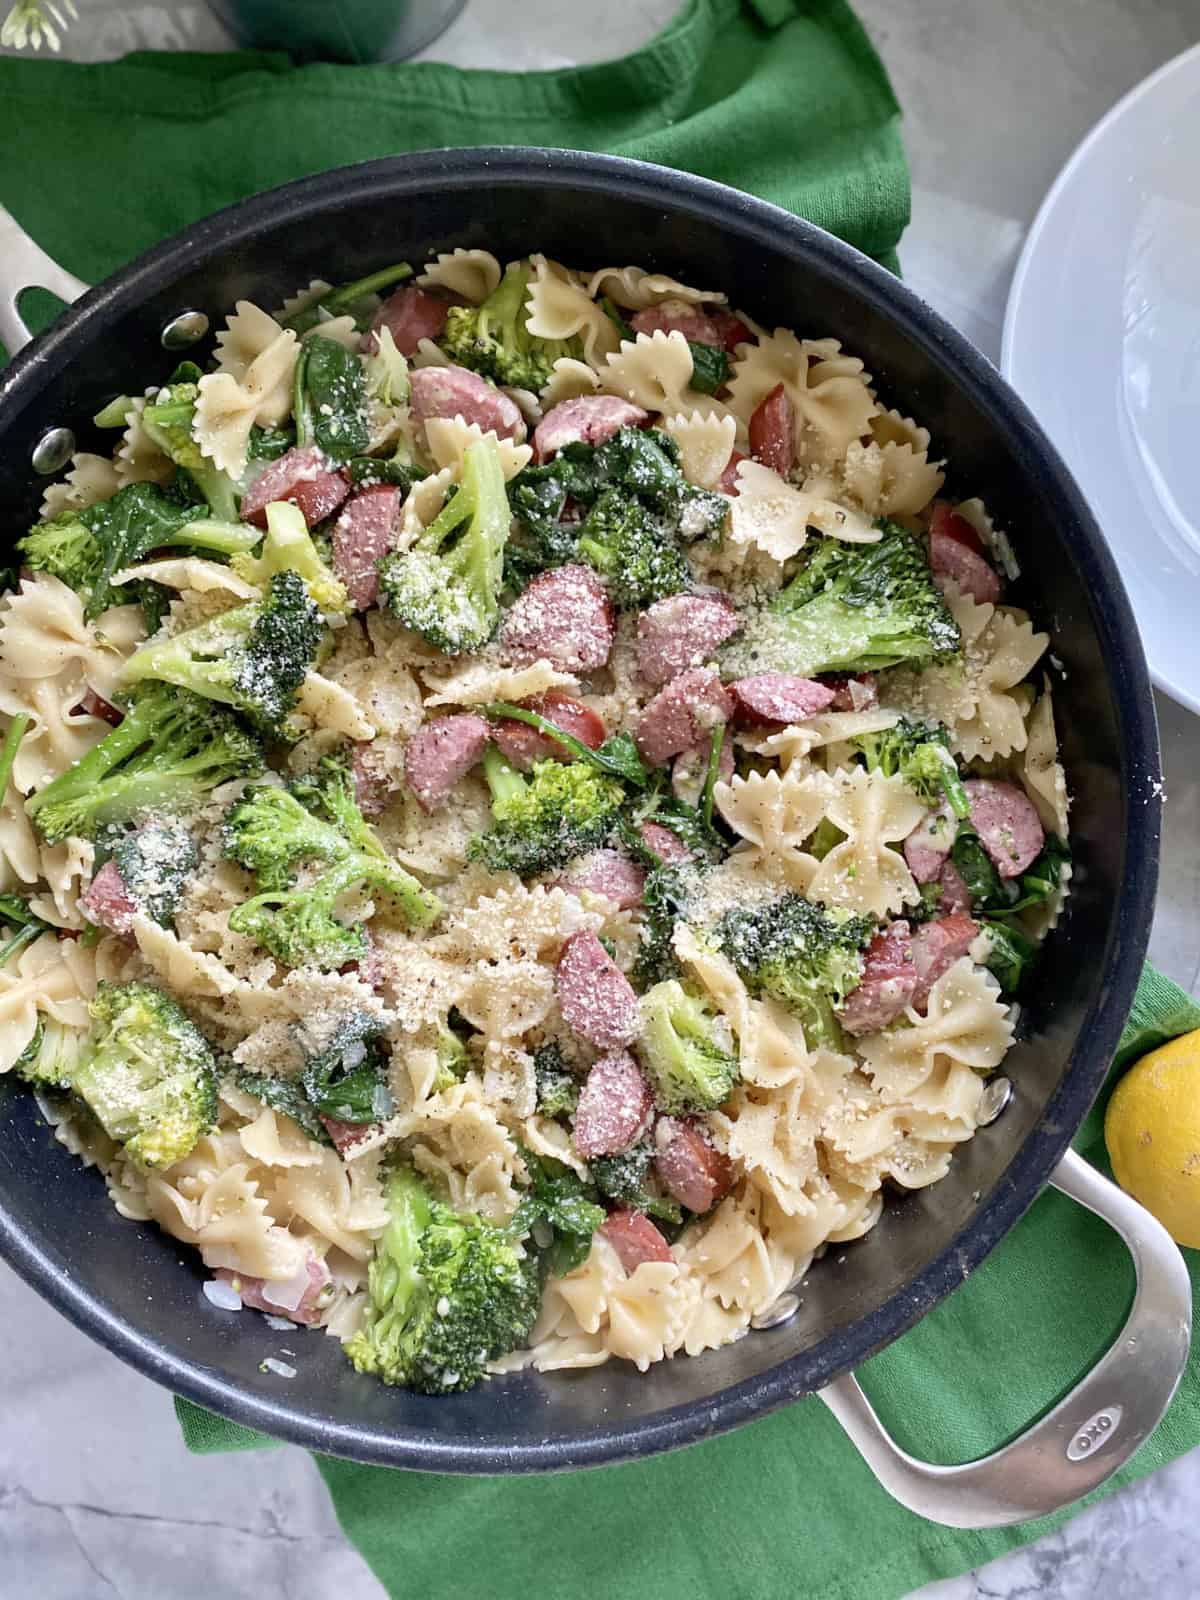 Top view of a black skillet filled with bow tie pasta, broccoli, kielbasa, and cheese.